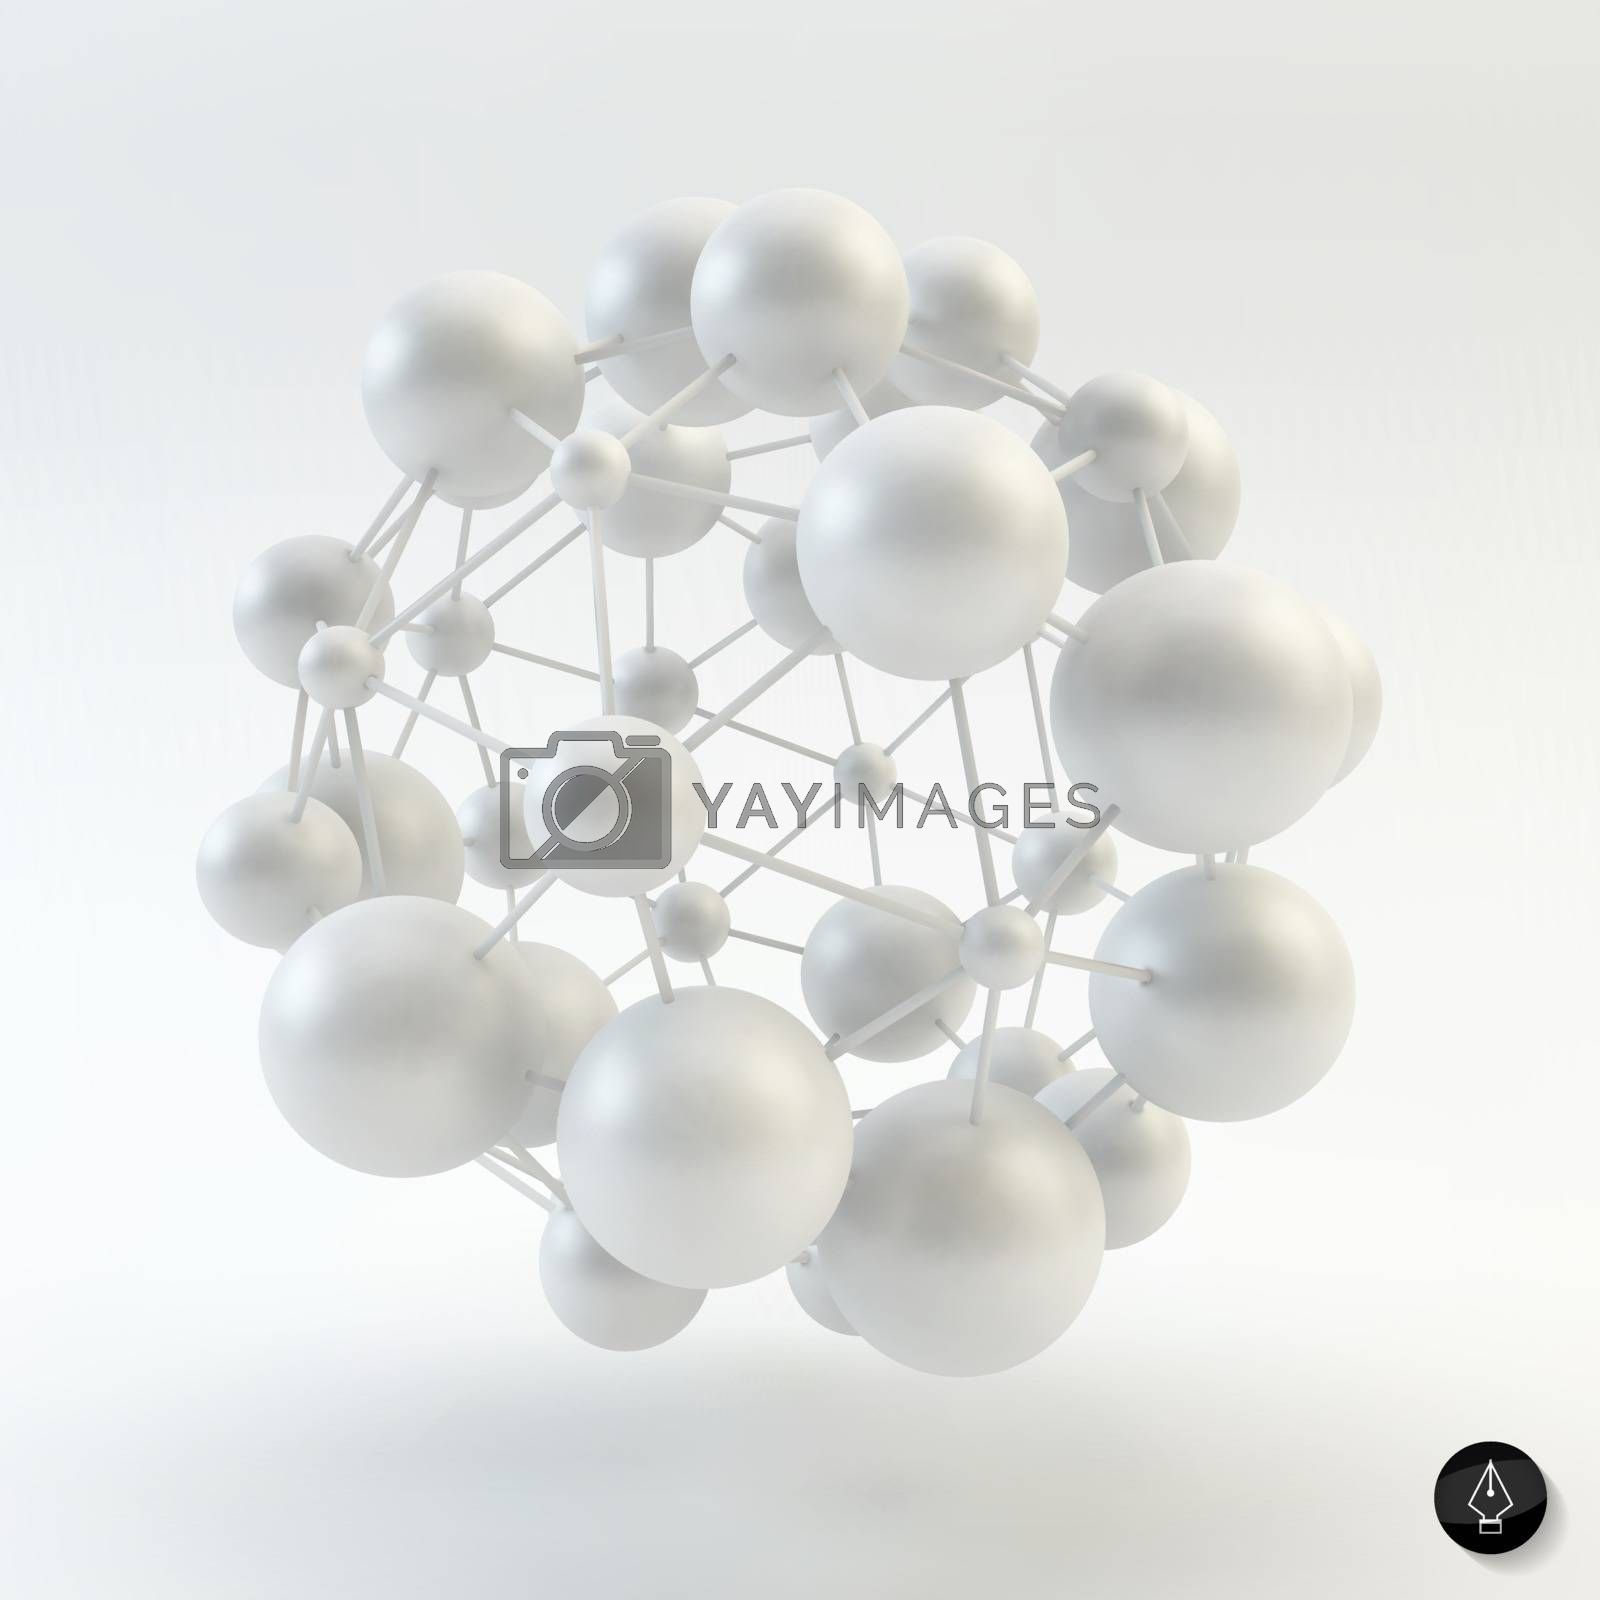 3D Molecule structure background. Graphic design.  by login